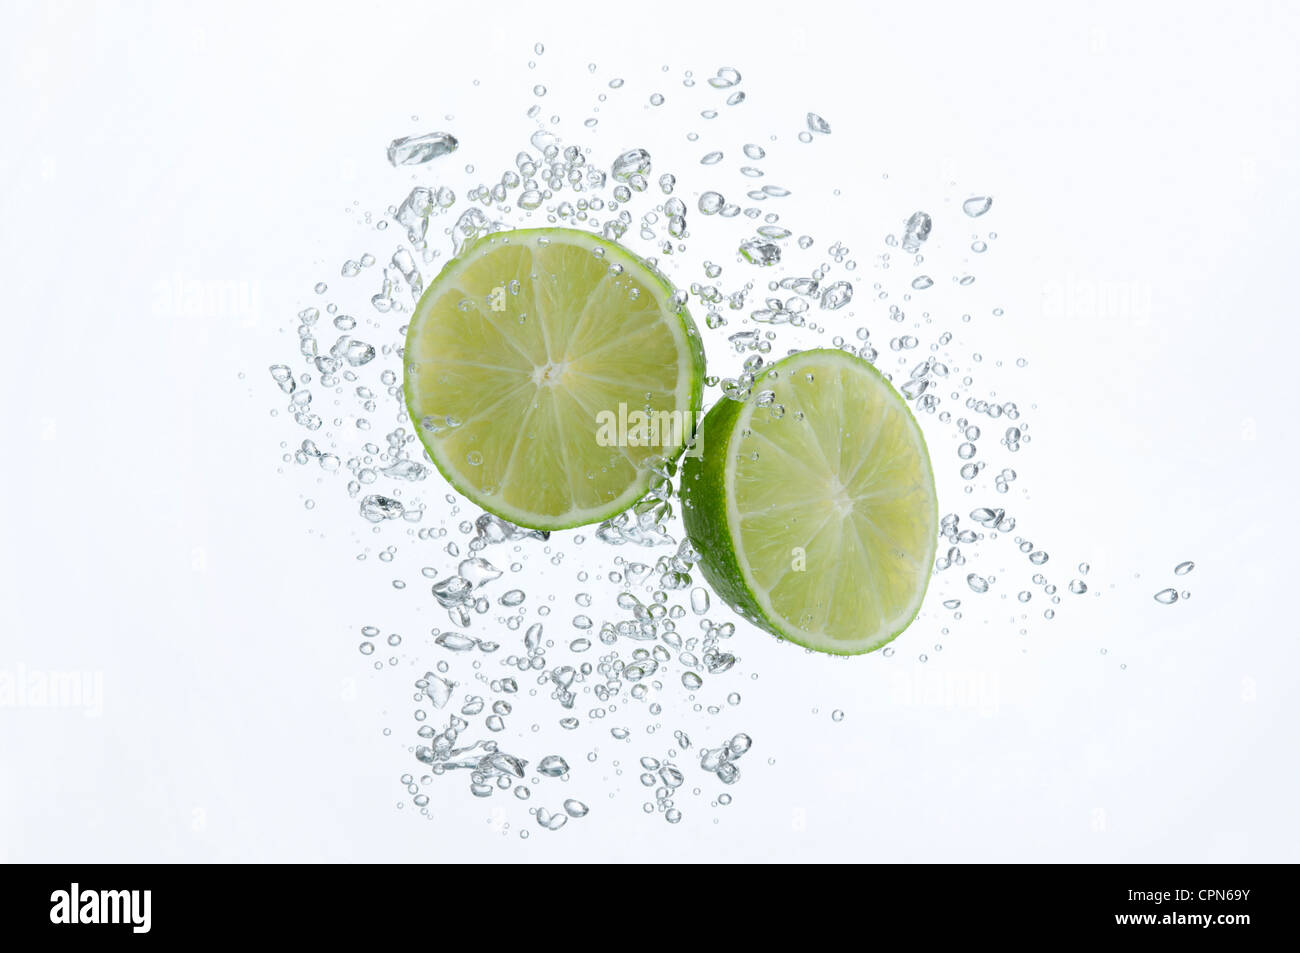 Lime halves submerged in sparkling water - Stock Image